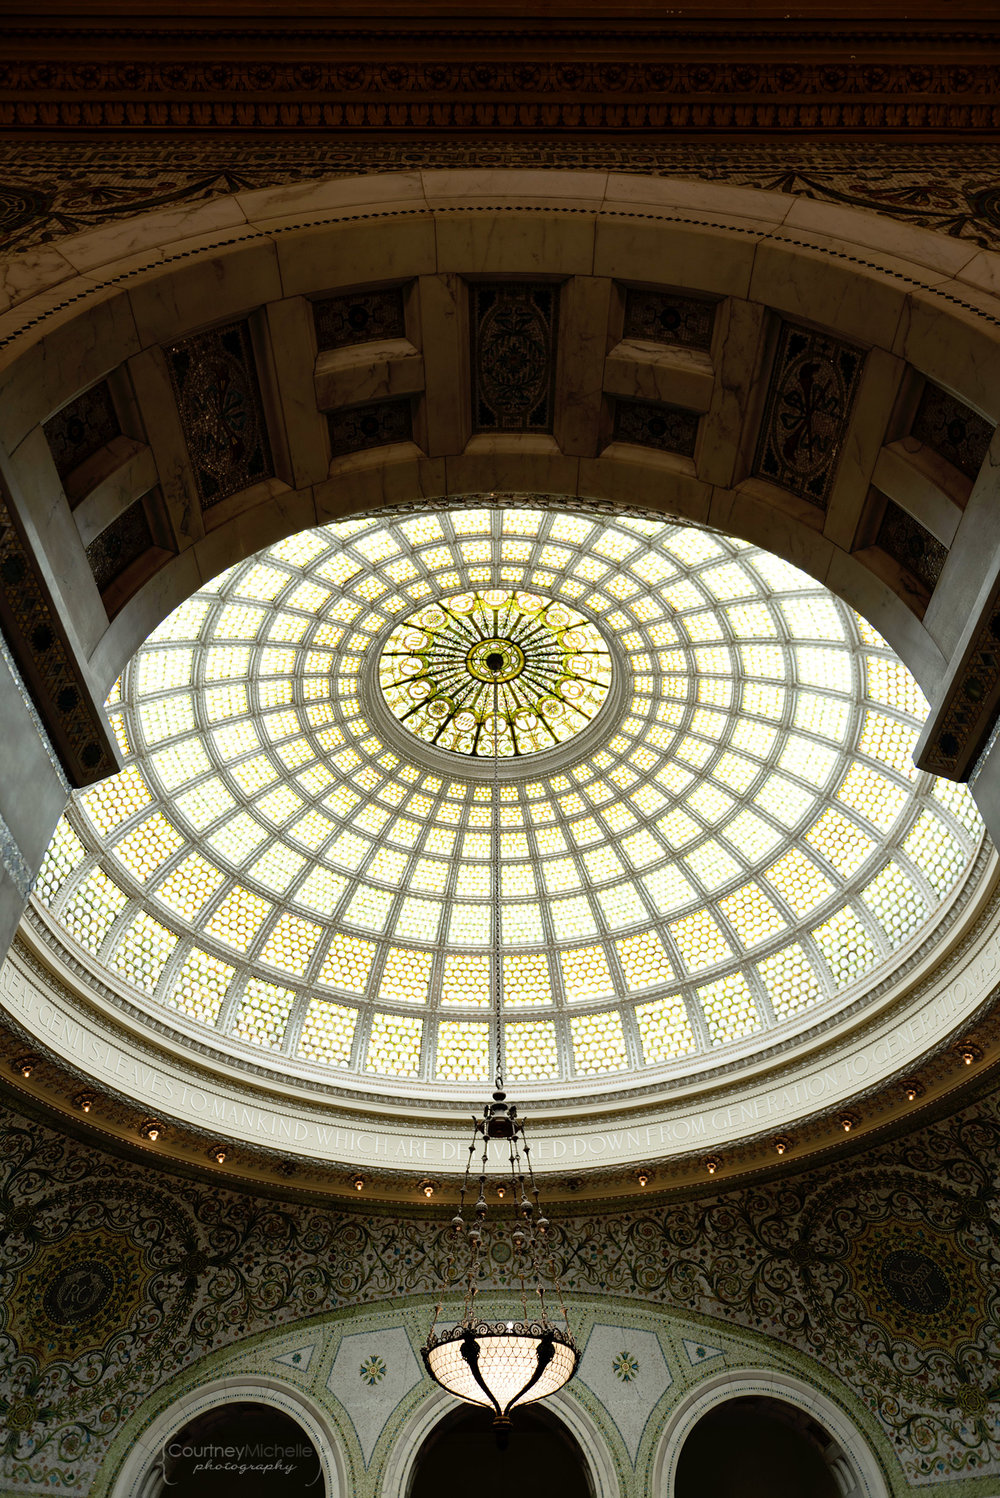 glass_dome_chicago_cultural_center_chicago_street_photography_courtney_laper_photography.jpg